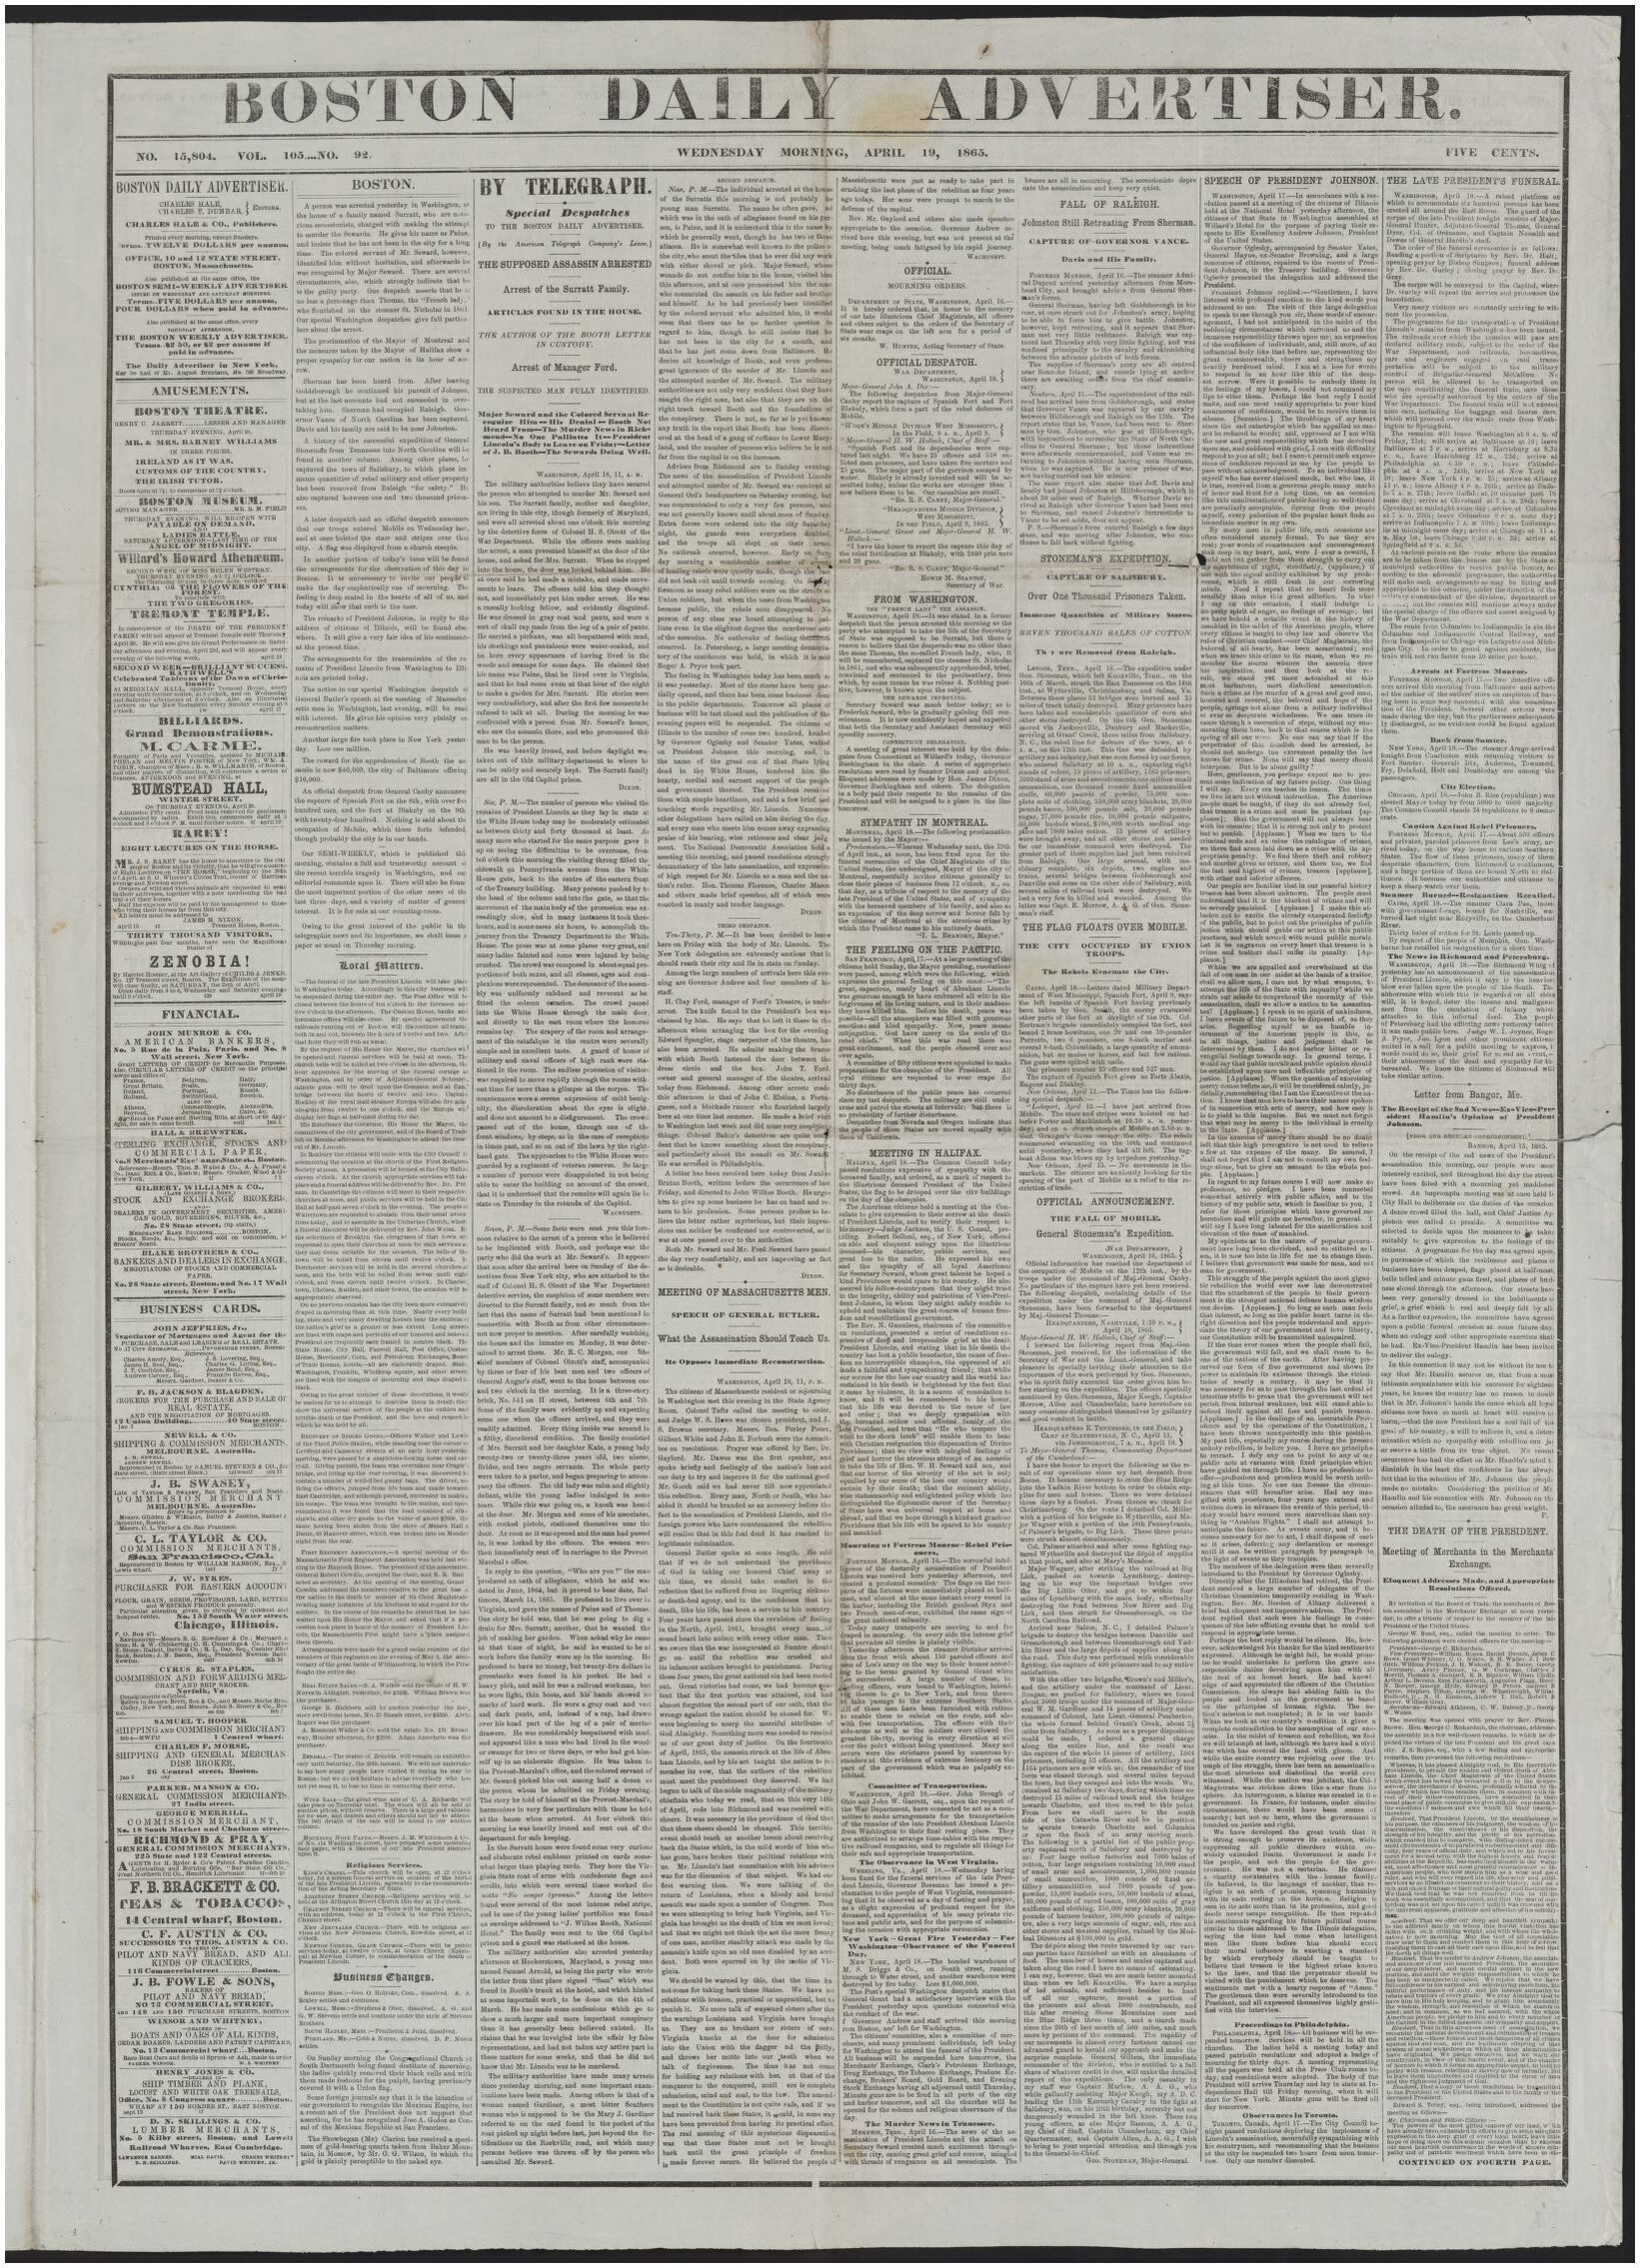 Western Real Estate Business Magazine Image 1 Of Boston Daily Advertiser [newspaper] April 19 1865